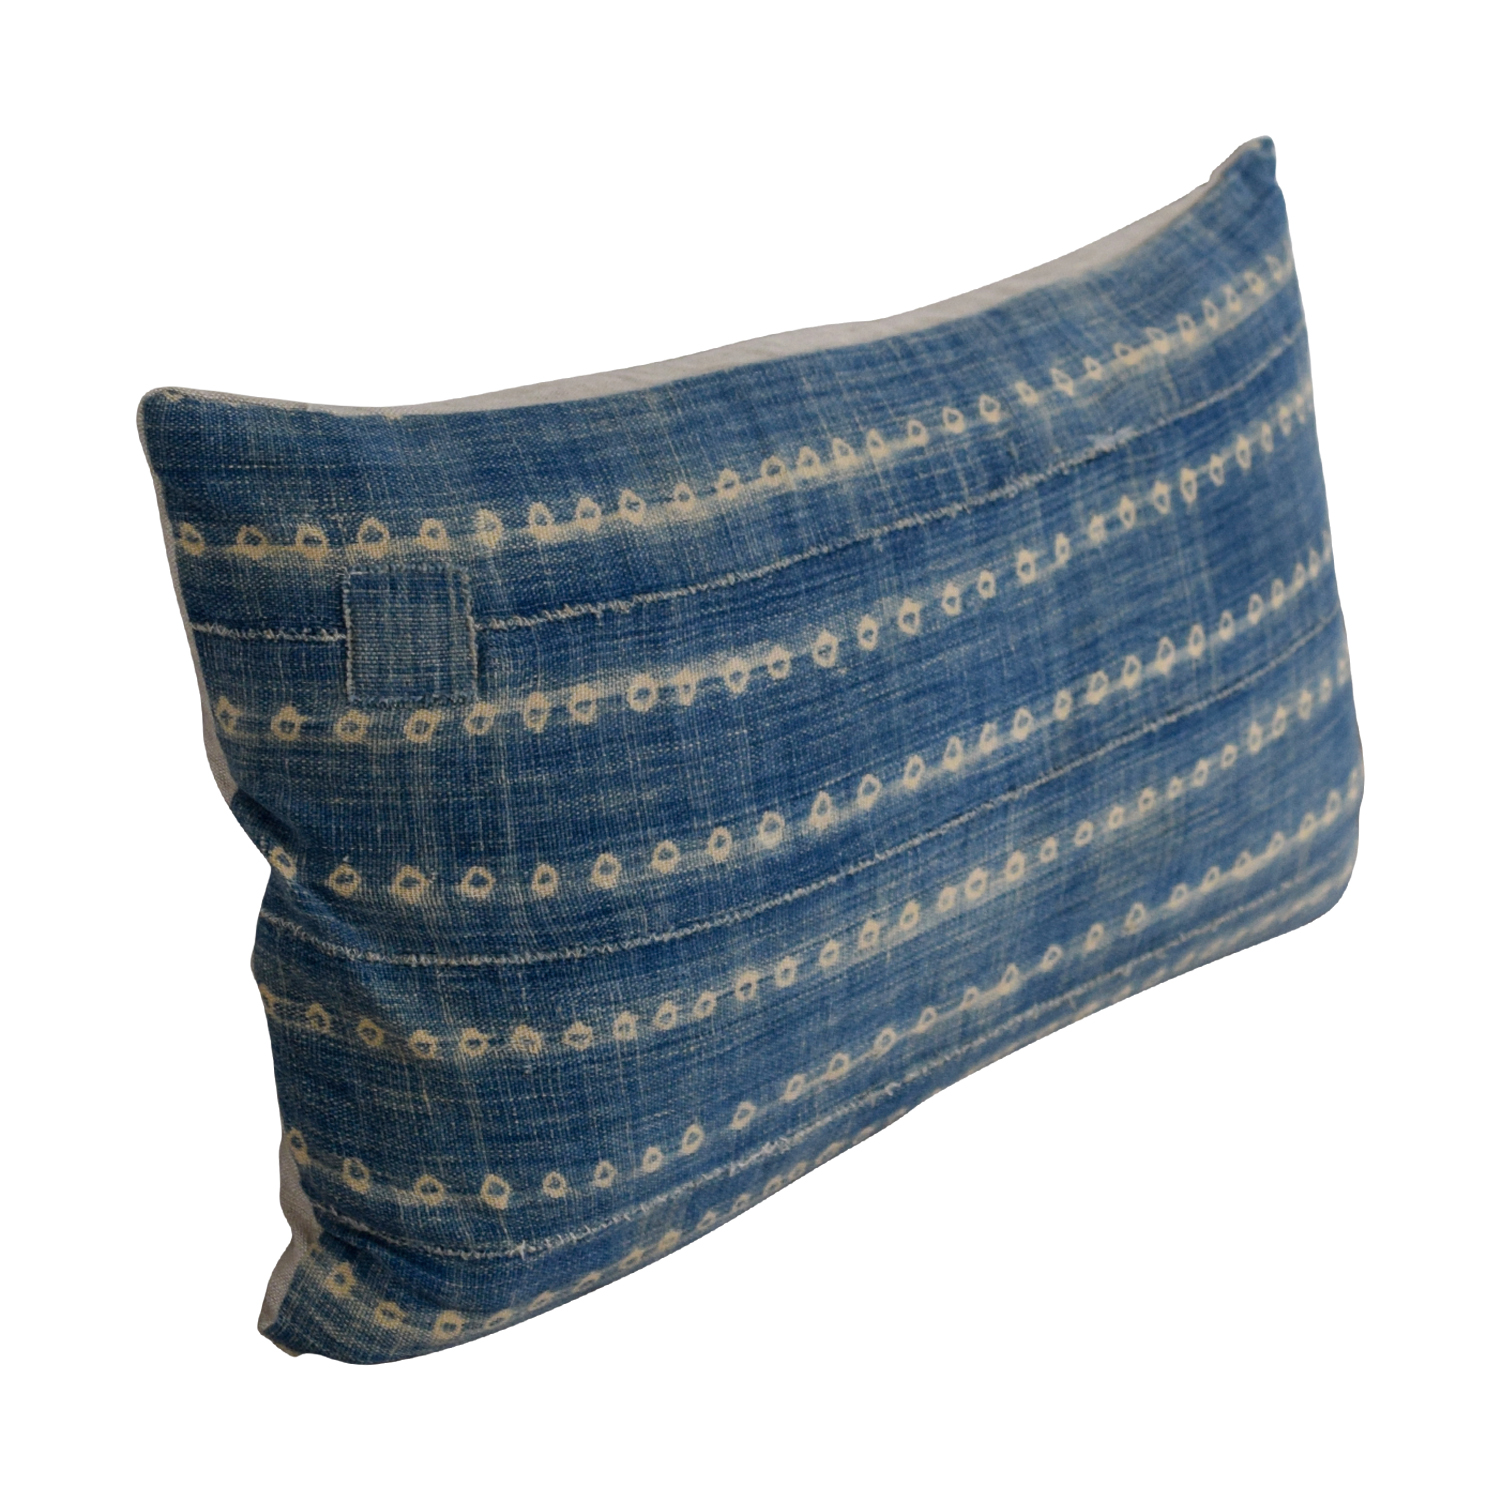 Etsy Etsy African Blue Mudcloth Toss Pillow discount